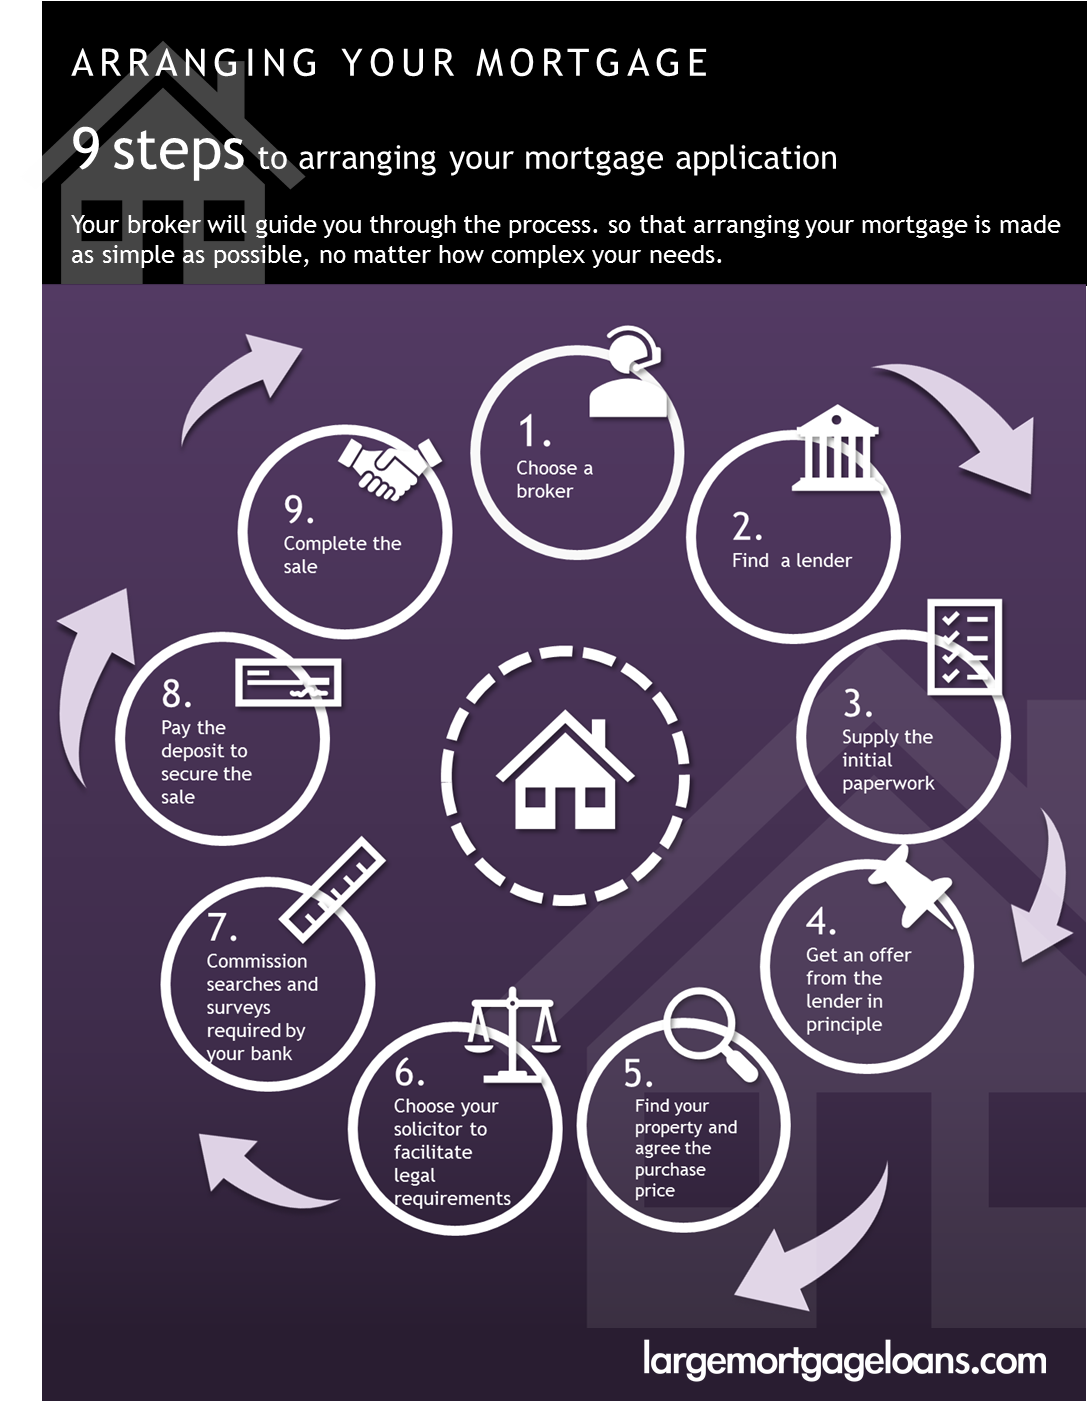 9 steps to arranging your mortgage